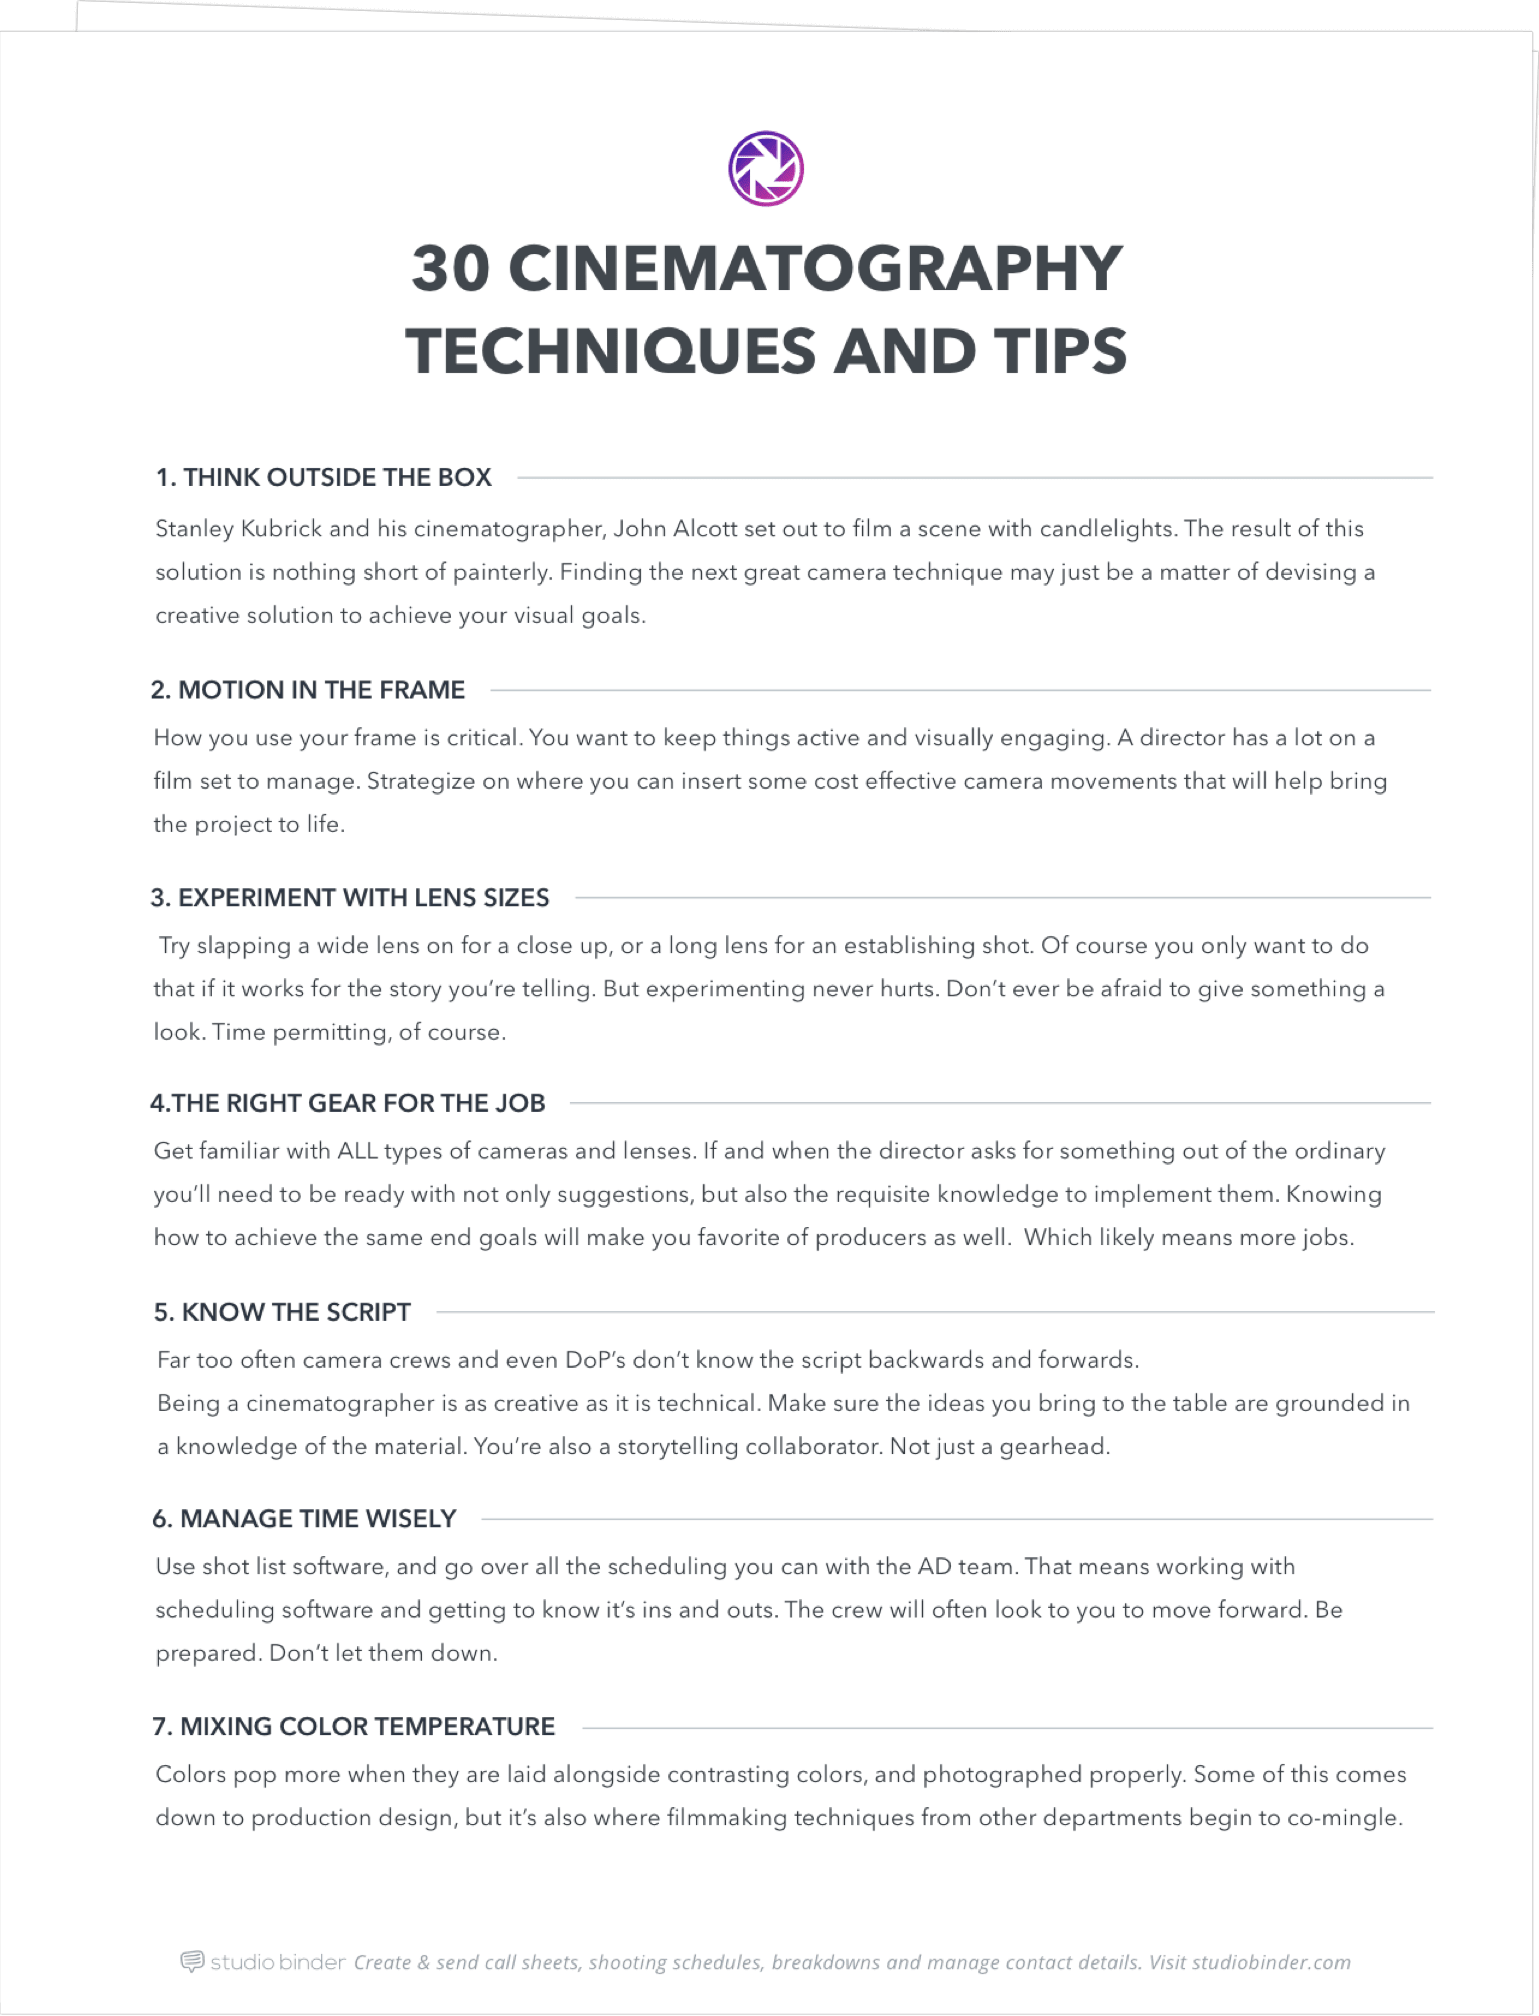 30 Cinematography Techniques and TIps - Exit Intent Full Page - StudioBinder